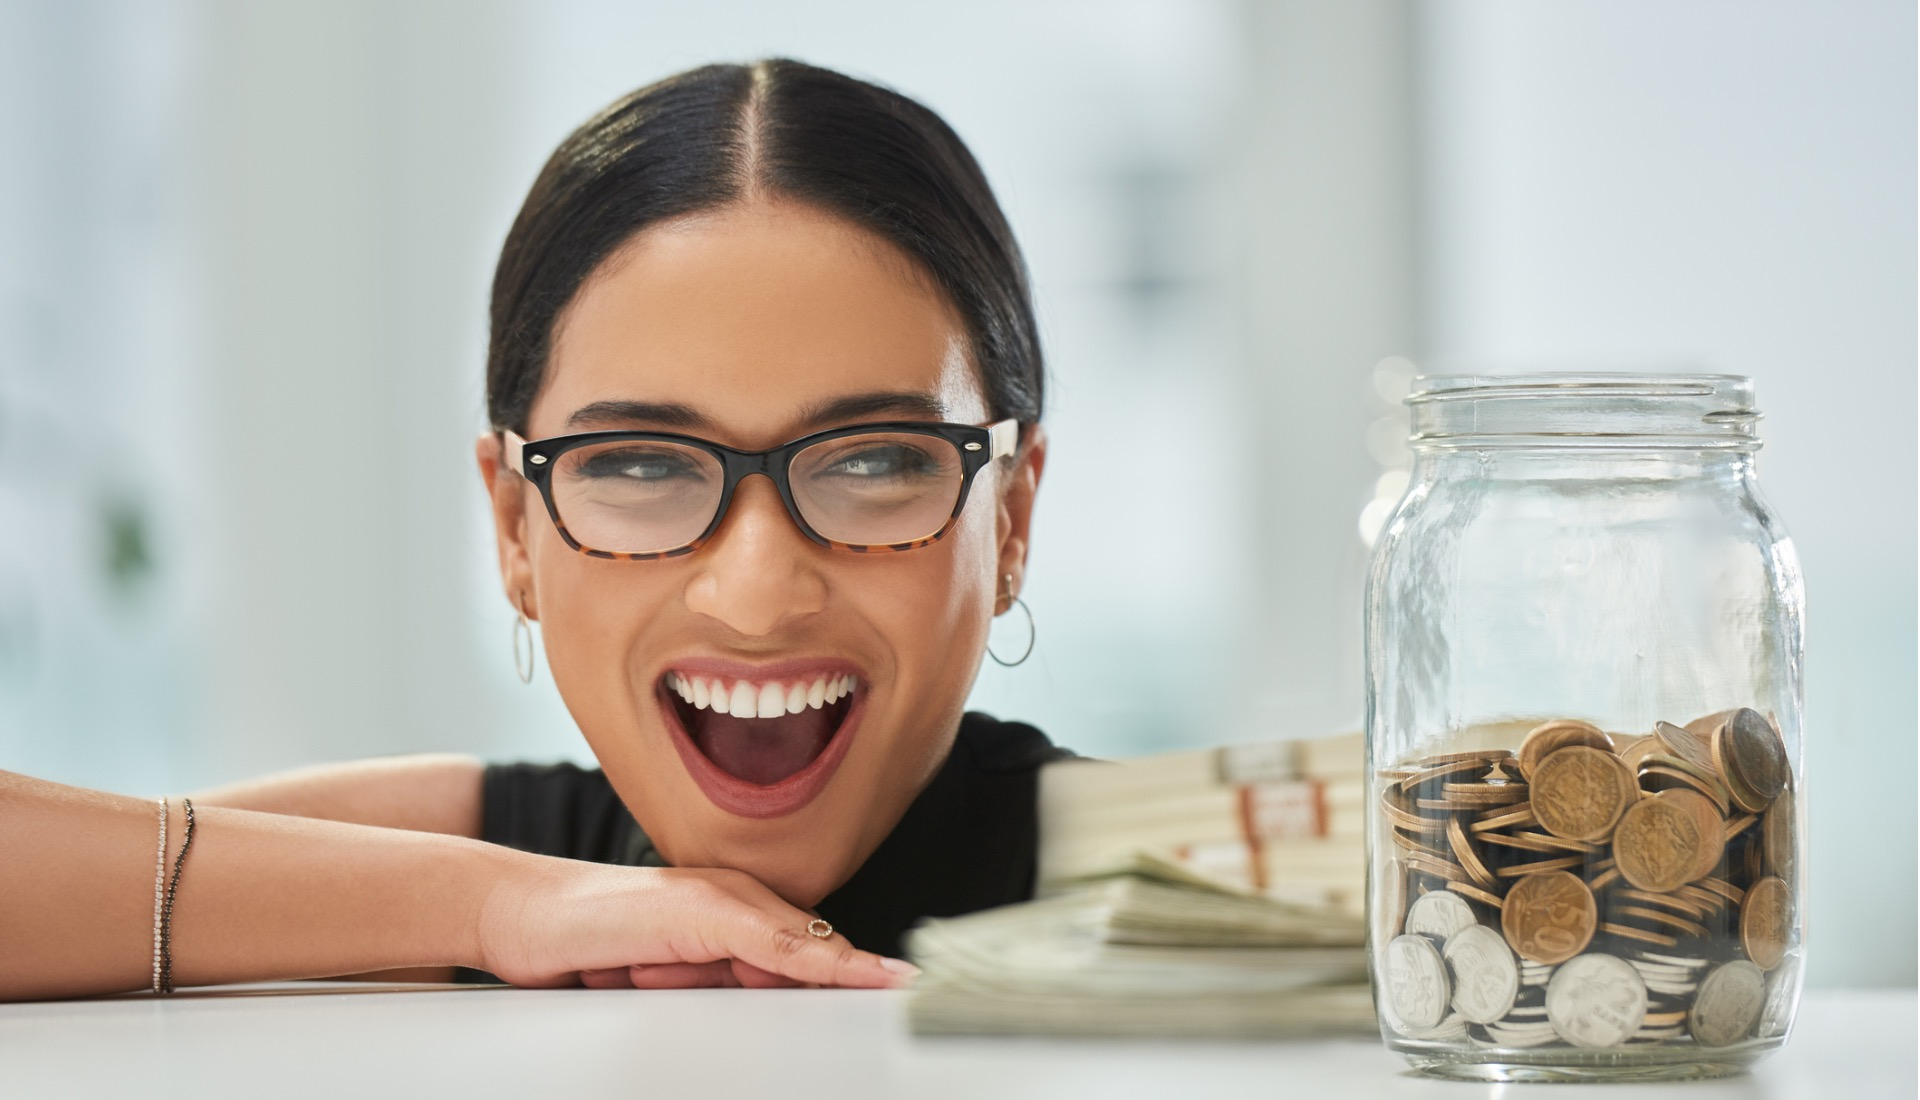 You are currently viewing MarketWatch: How To Make Your Money Happier